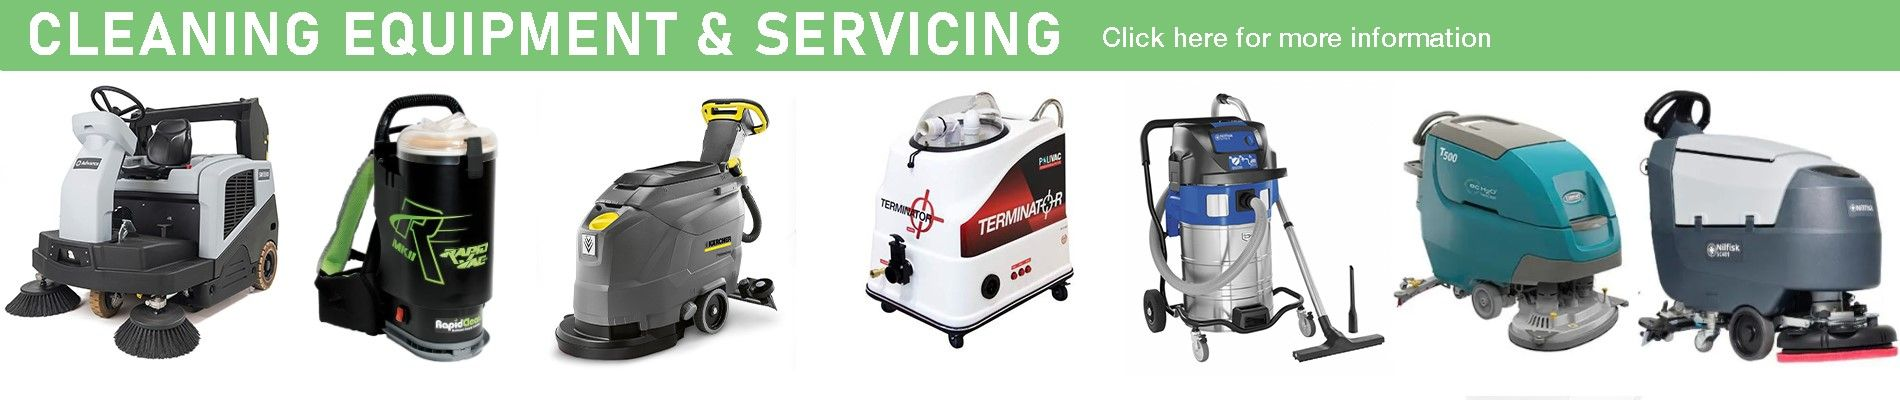 Cleaning Equipment & Services